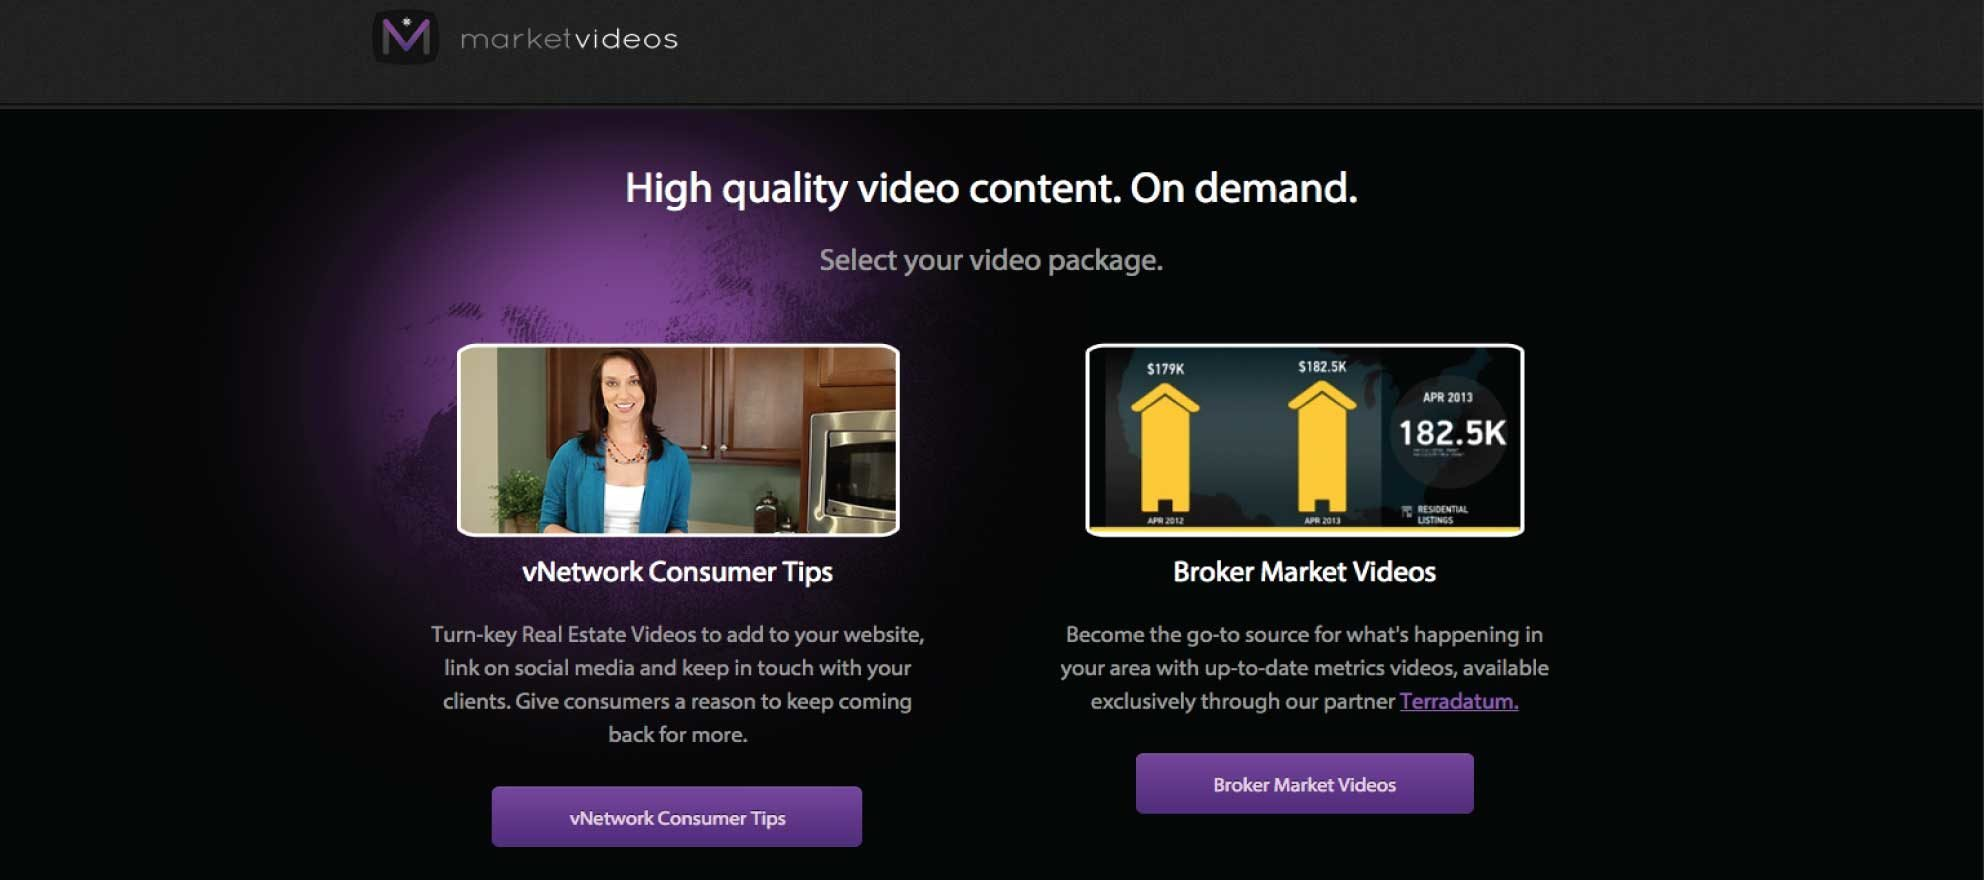 Agent-branded automated video marketing tool gets an update